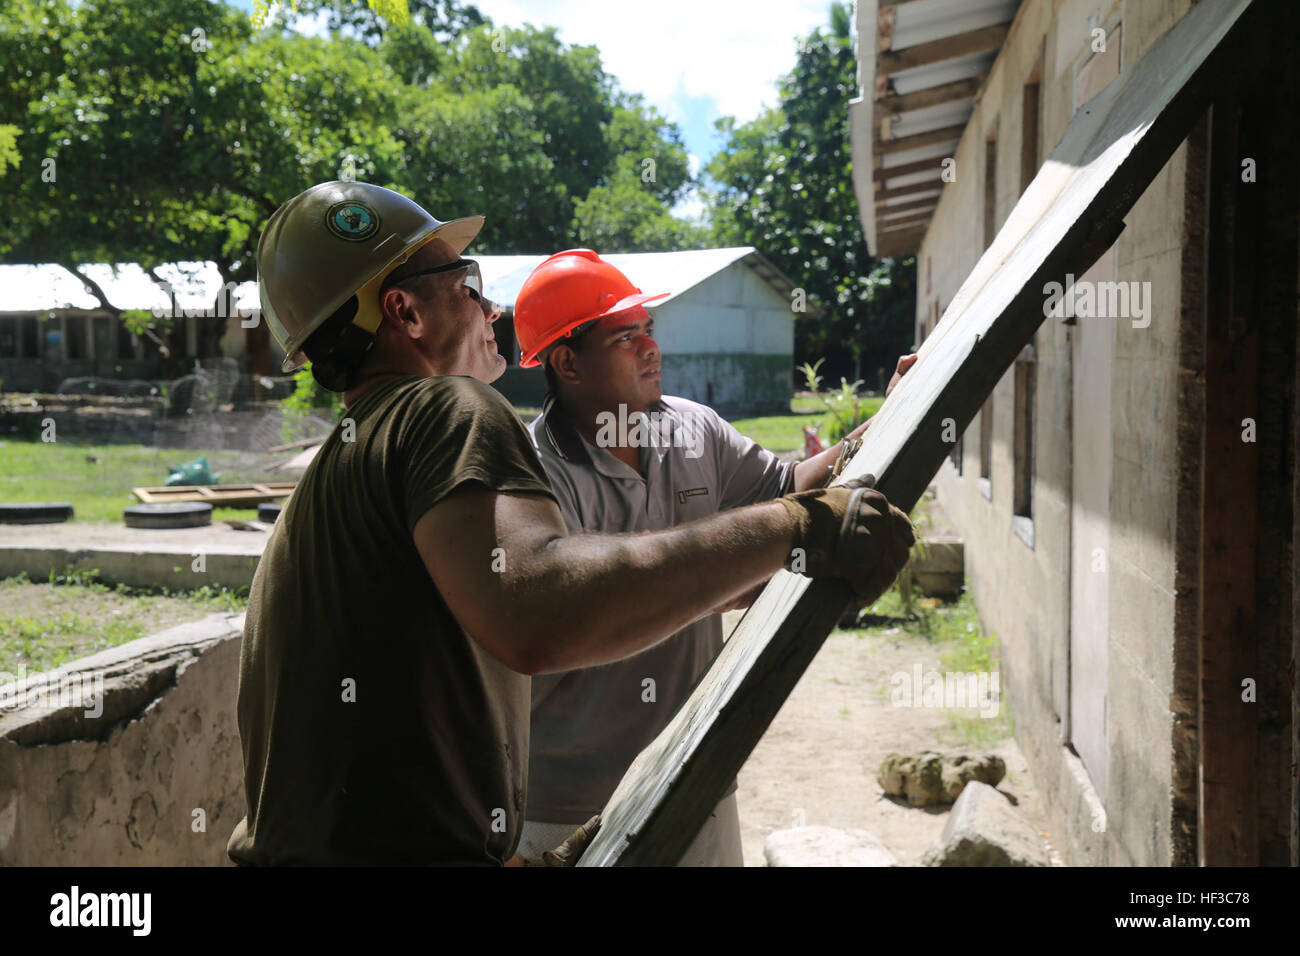 KIRABATI (June 3, 2015) – Steelworker 3rd Class Johnathon Walsh, left, assists a local construction worker in removing Stock Photo